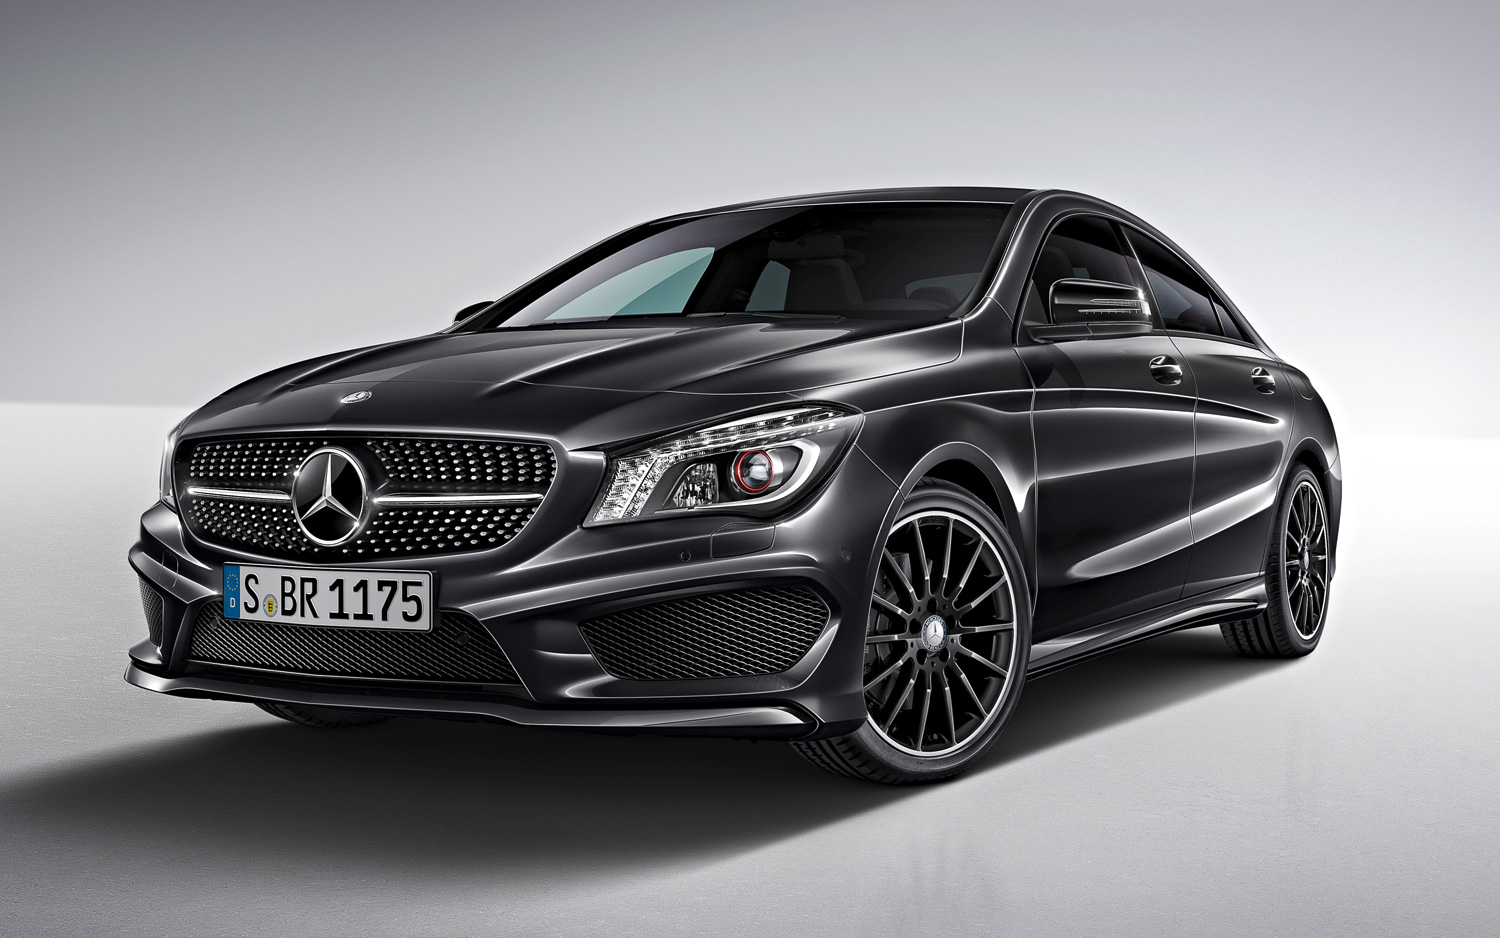 2014 mercedes benz cla class information and photos zombiedrive. Cars Review. Best American Auto & Cars Review